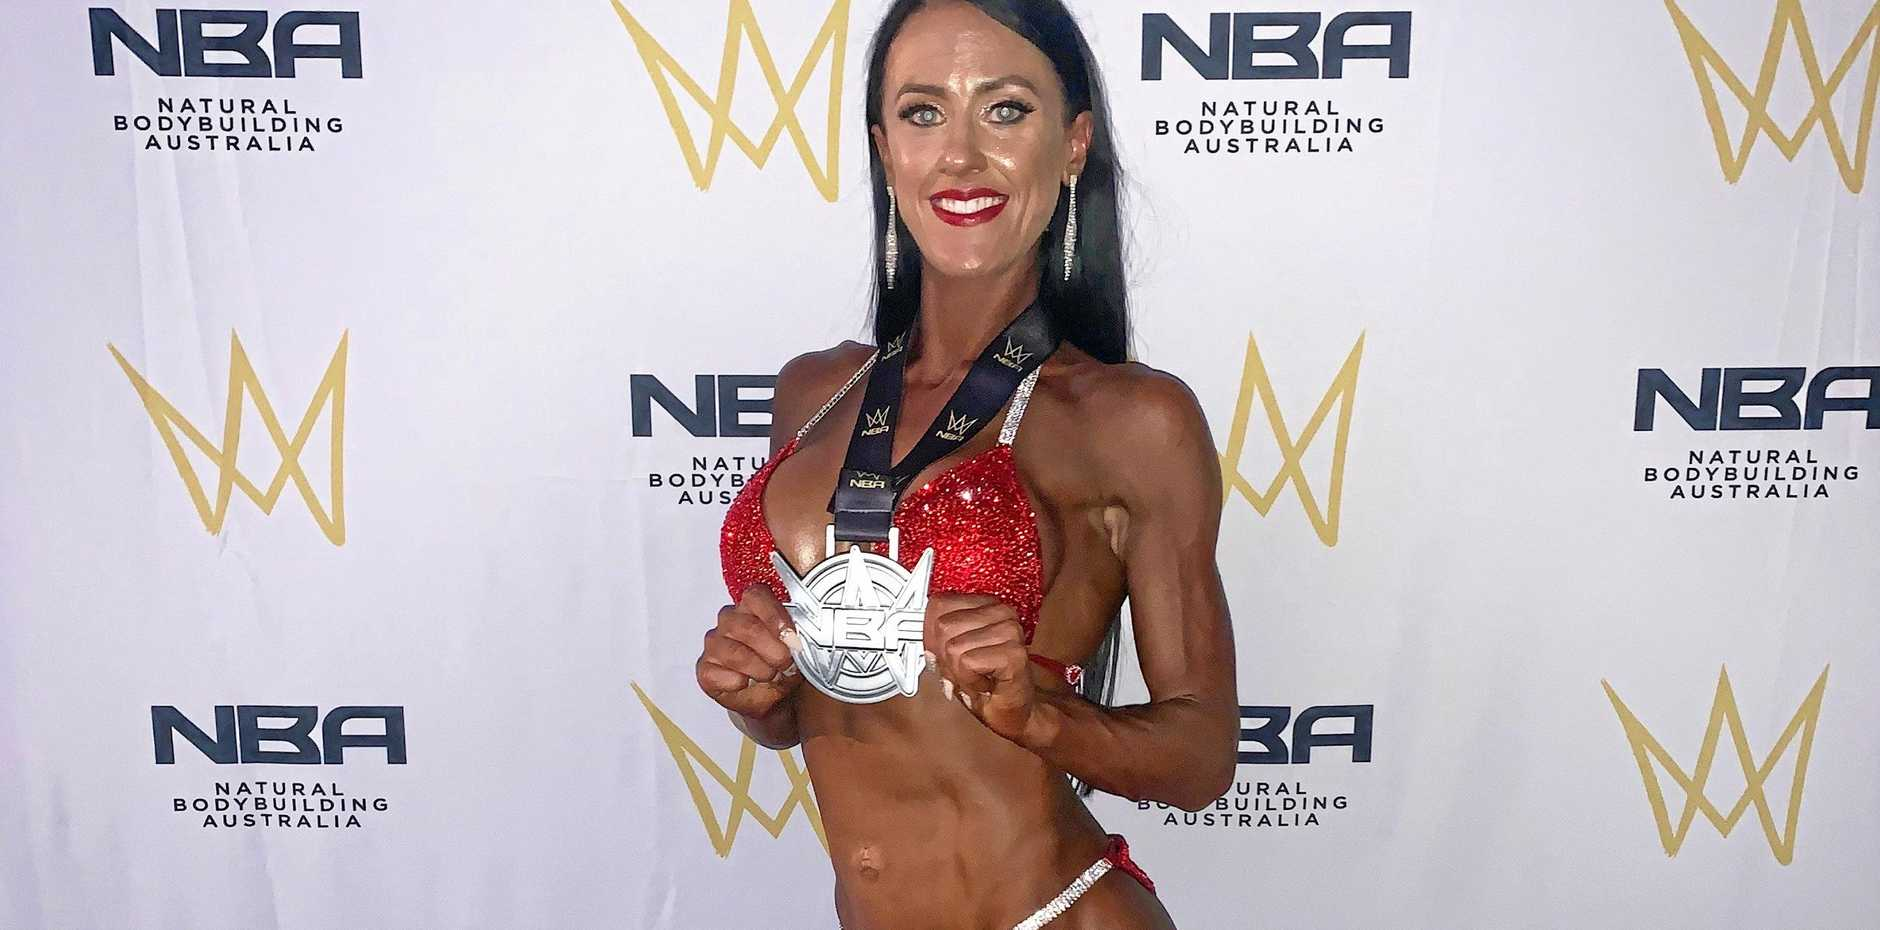 LOCAL CHAMPION: Stacey Darr placed fourth at the NBA nationals.